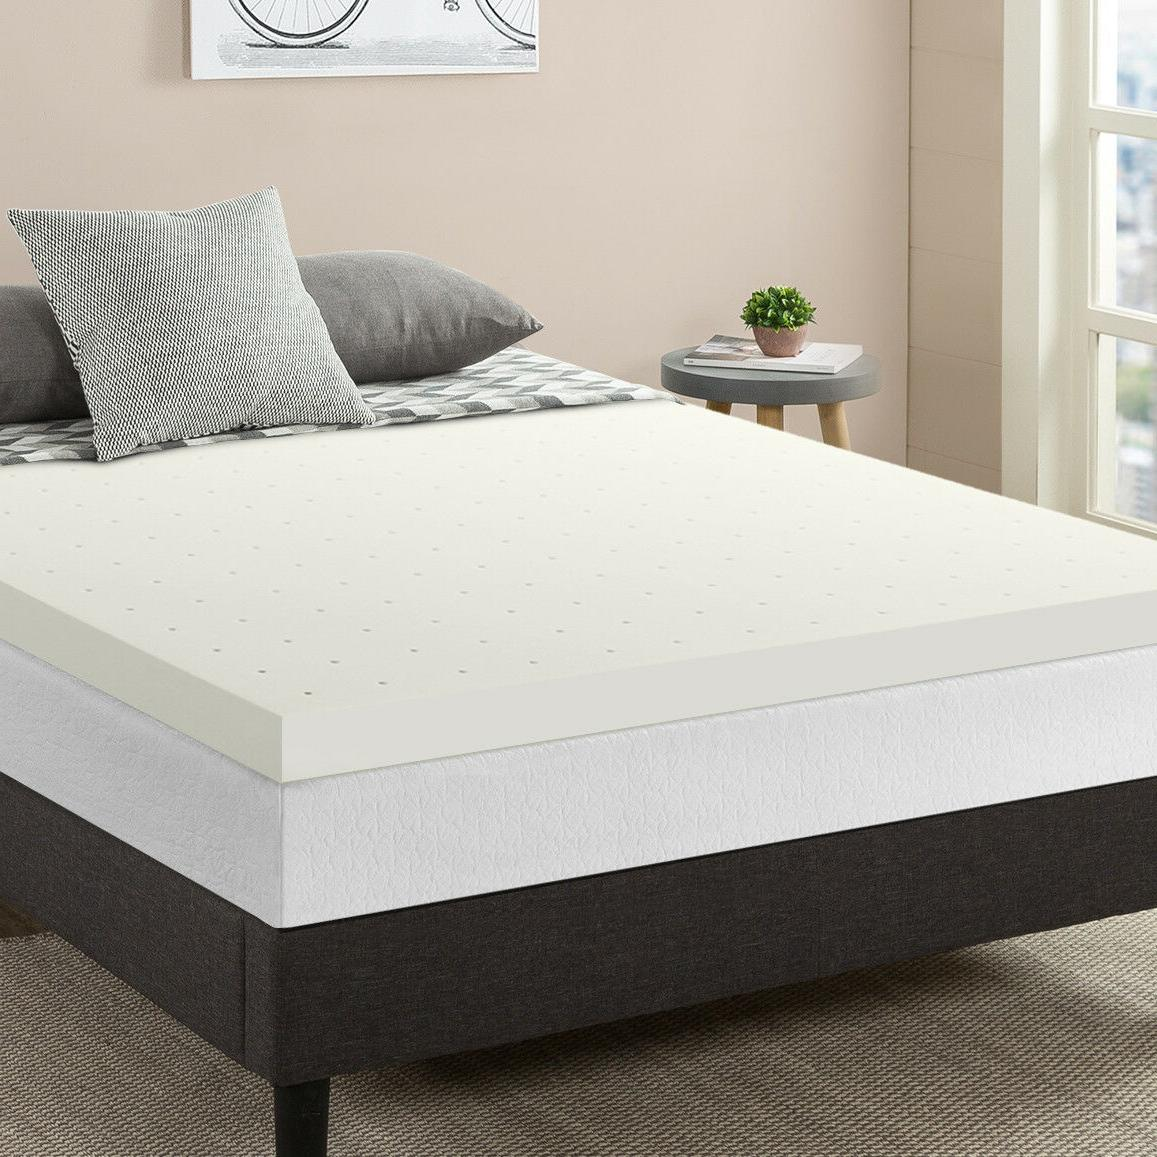 3 premium ventilated air flow memory foam